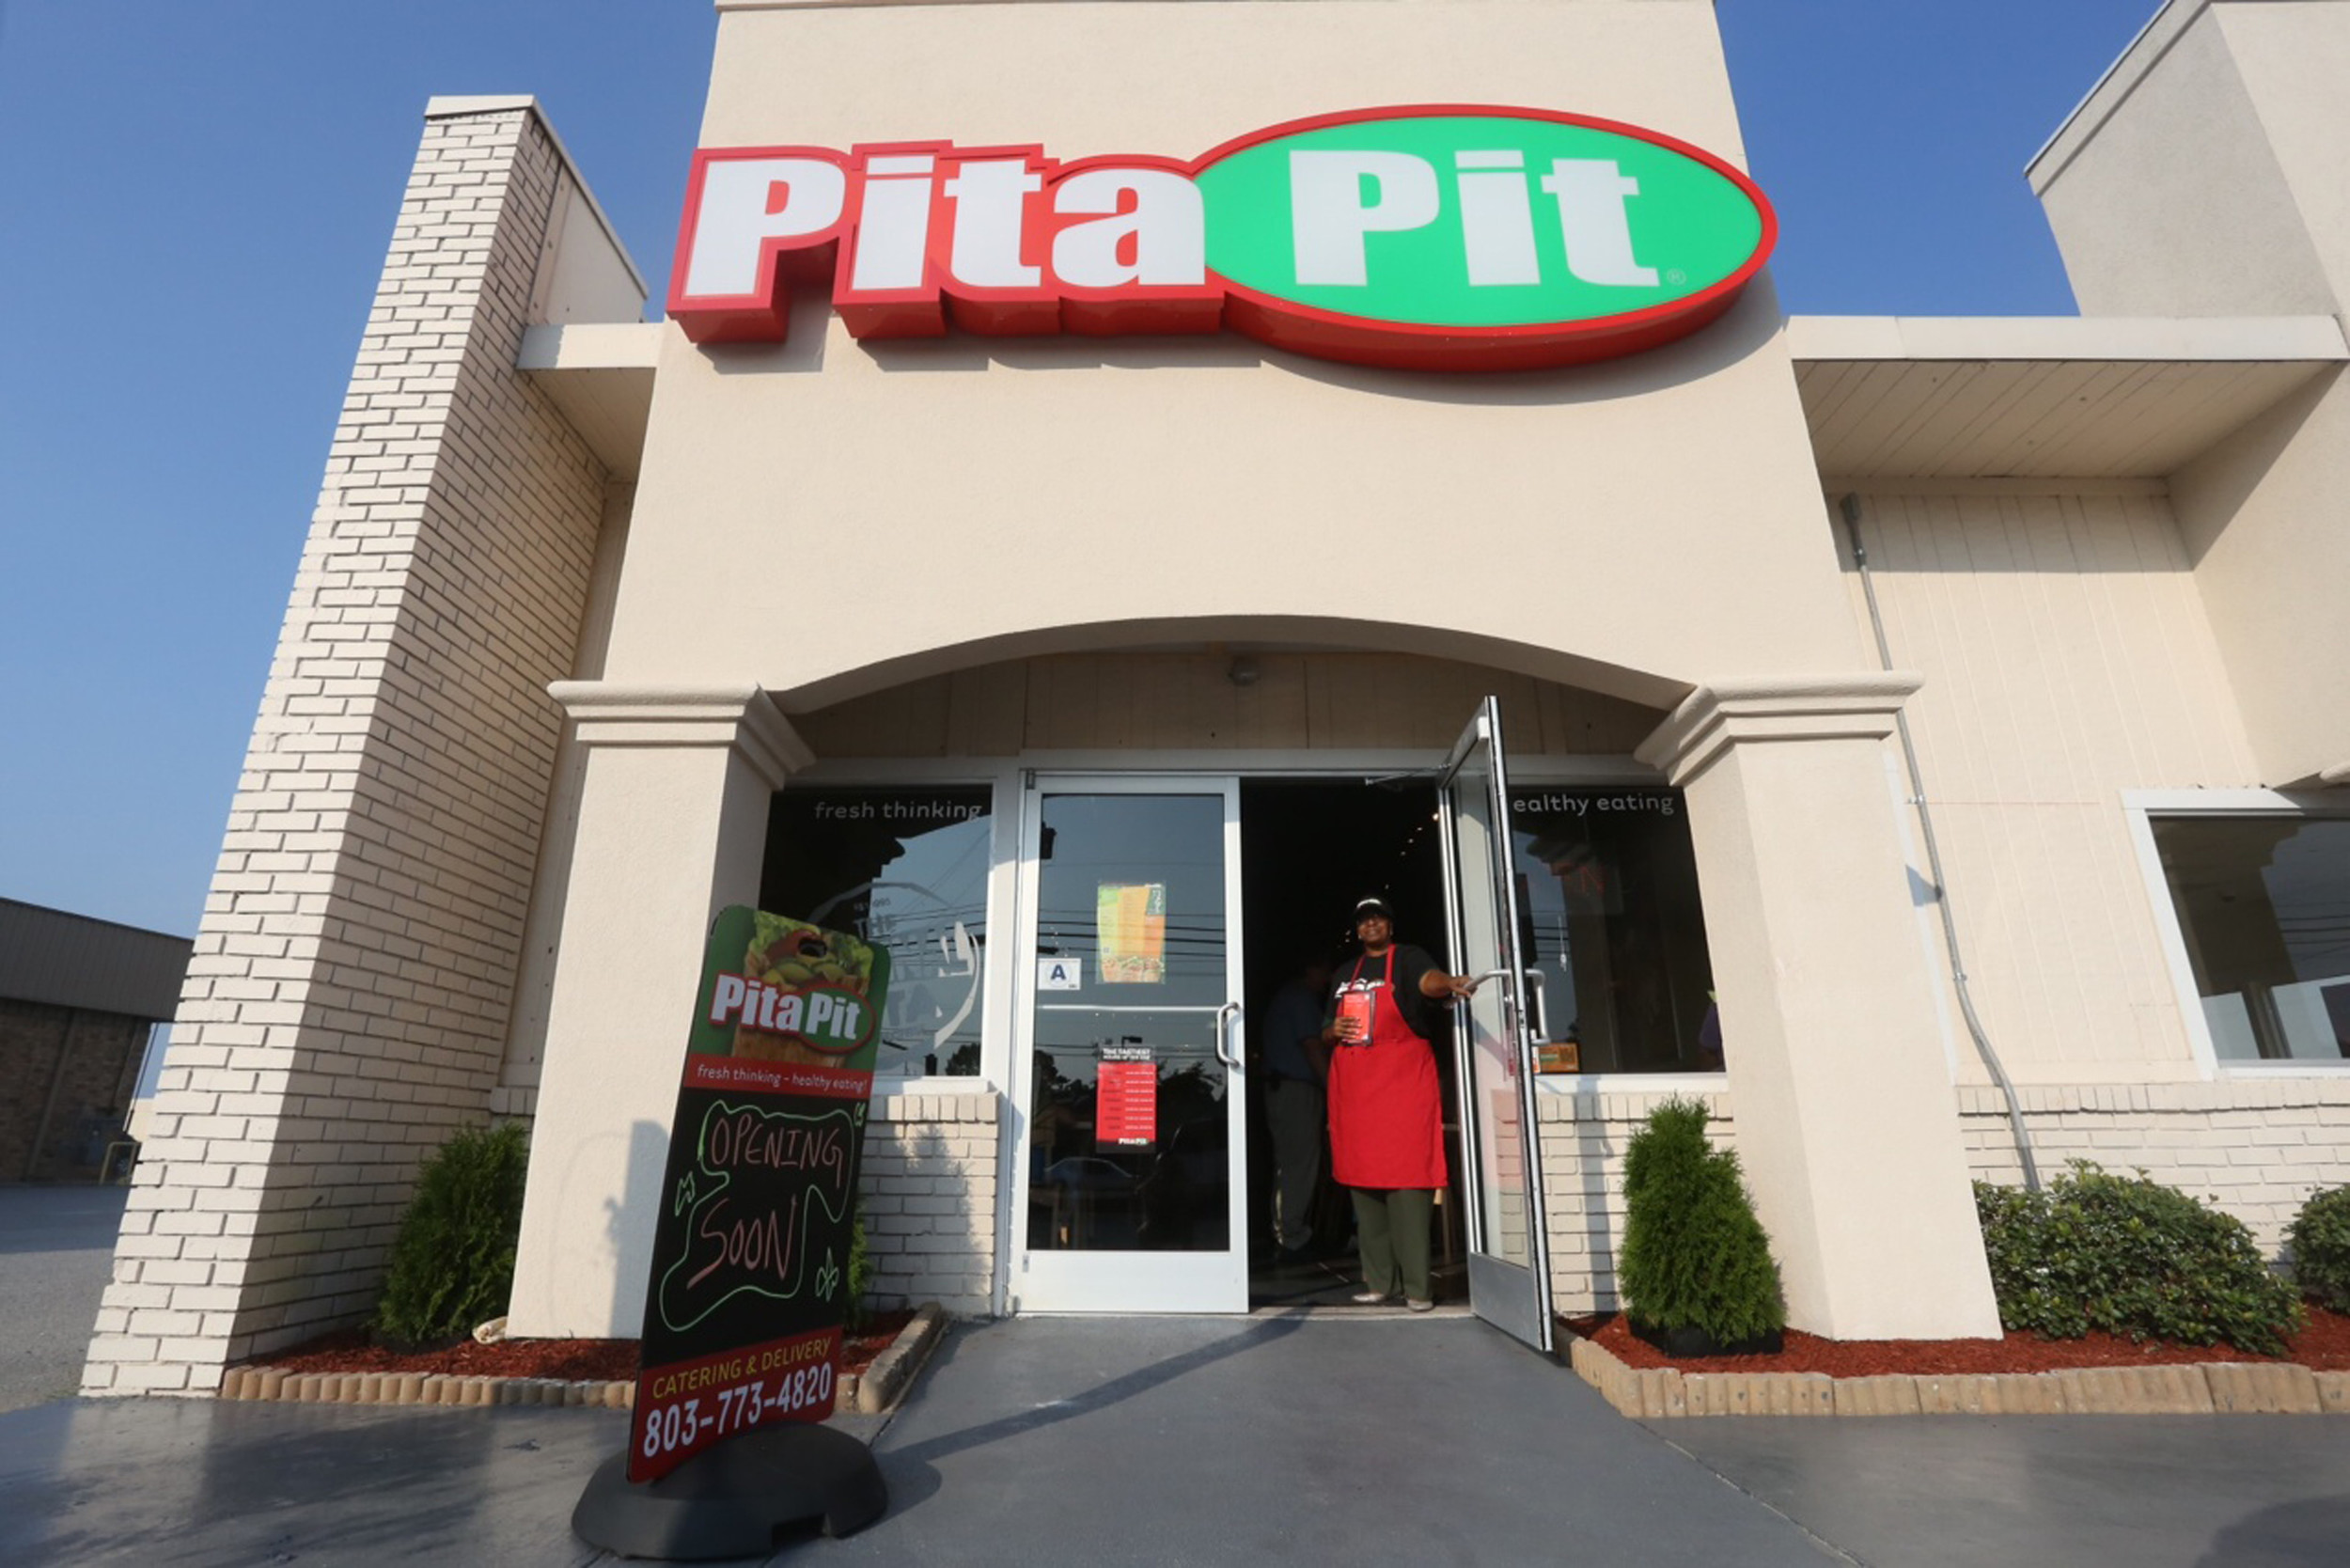 Pita Pit, 1029 Broad St., Suite B., is now open. The restaurant was supposed to open mid-June, but problems with construction set the opening back to Friday.